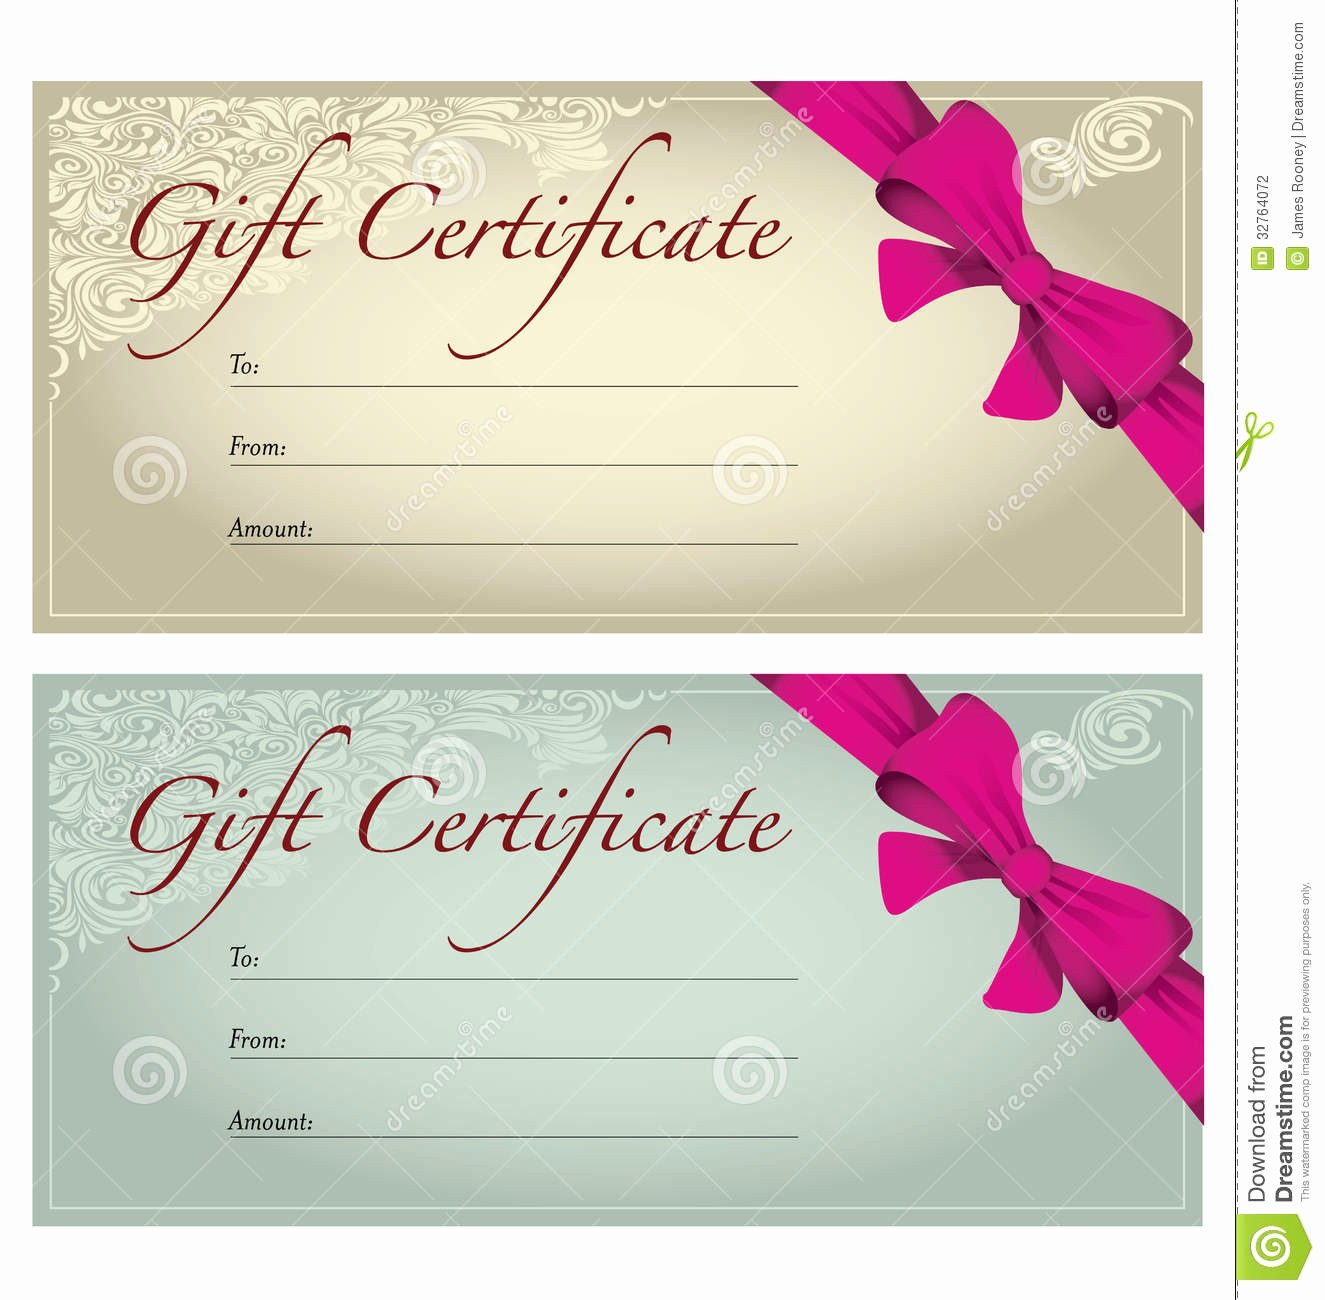 Print Gift Certificates Free Templates Awesome Gift Certificate Template